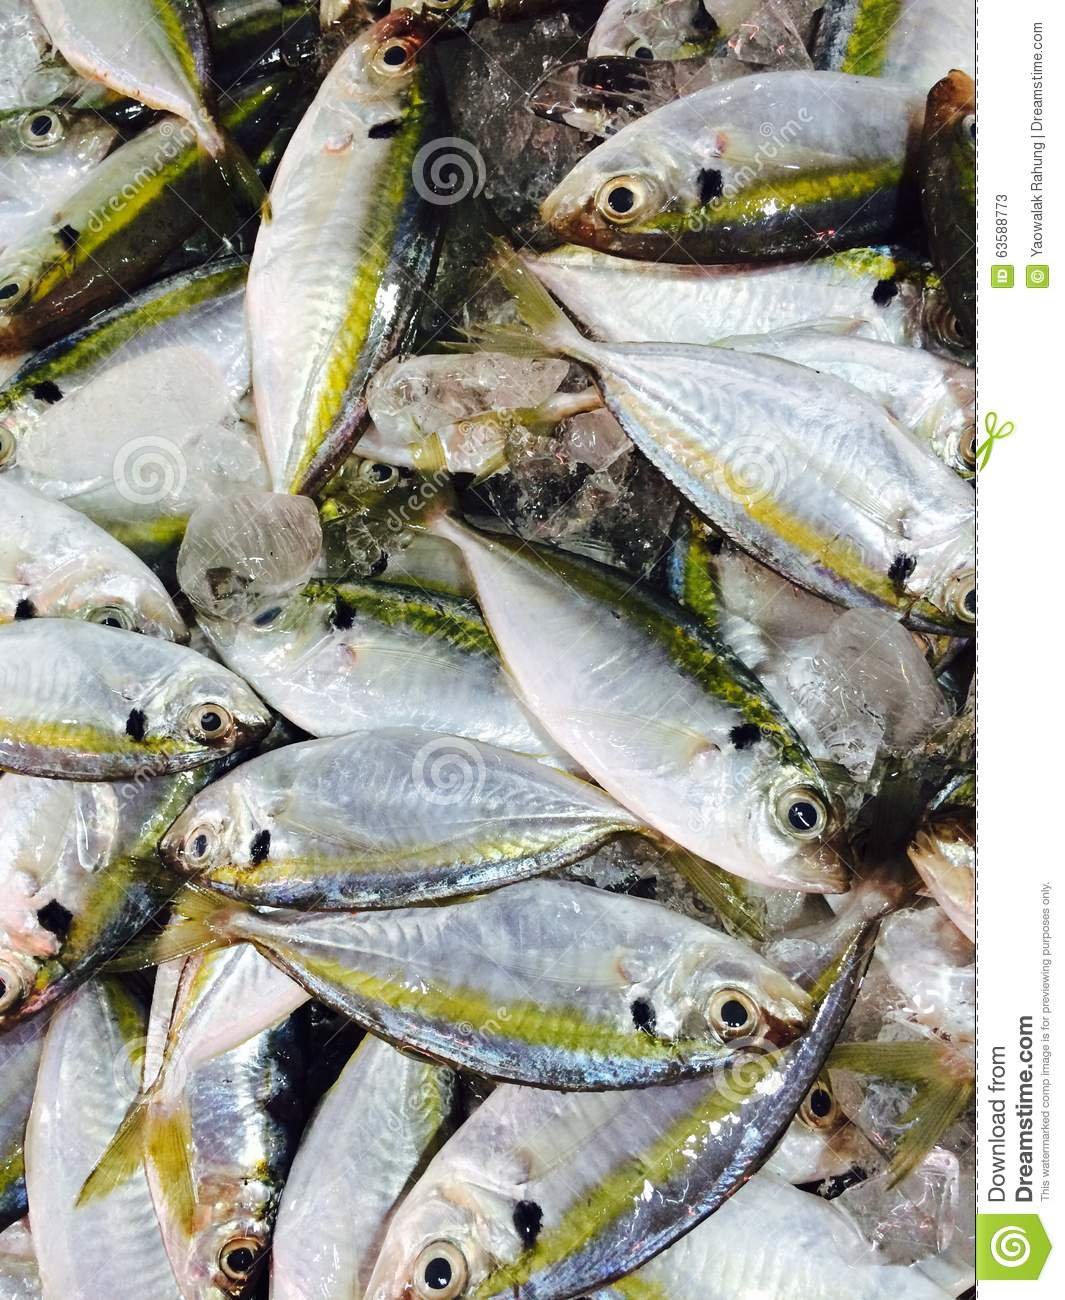 Jooker Lai Lai Lai Audio Theem Downlod: Fish Sell In The Market Stock Photo